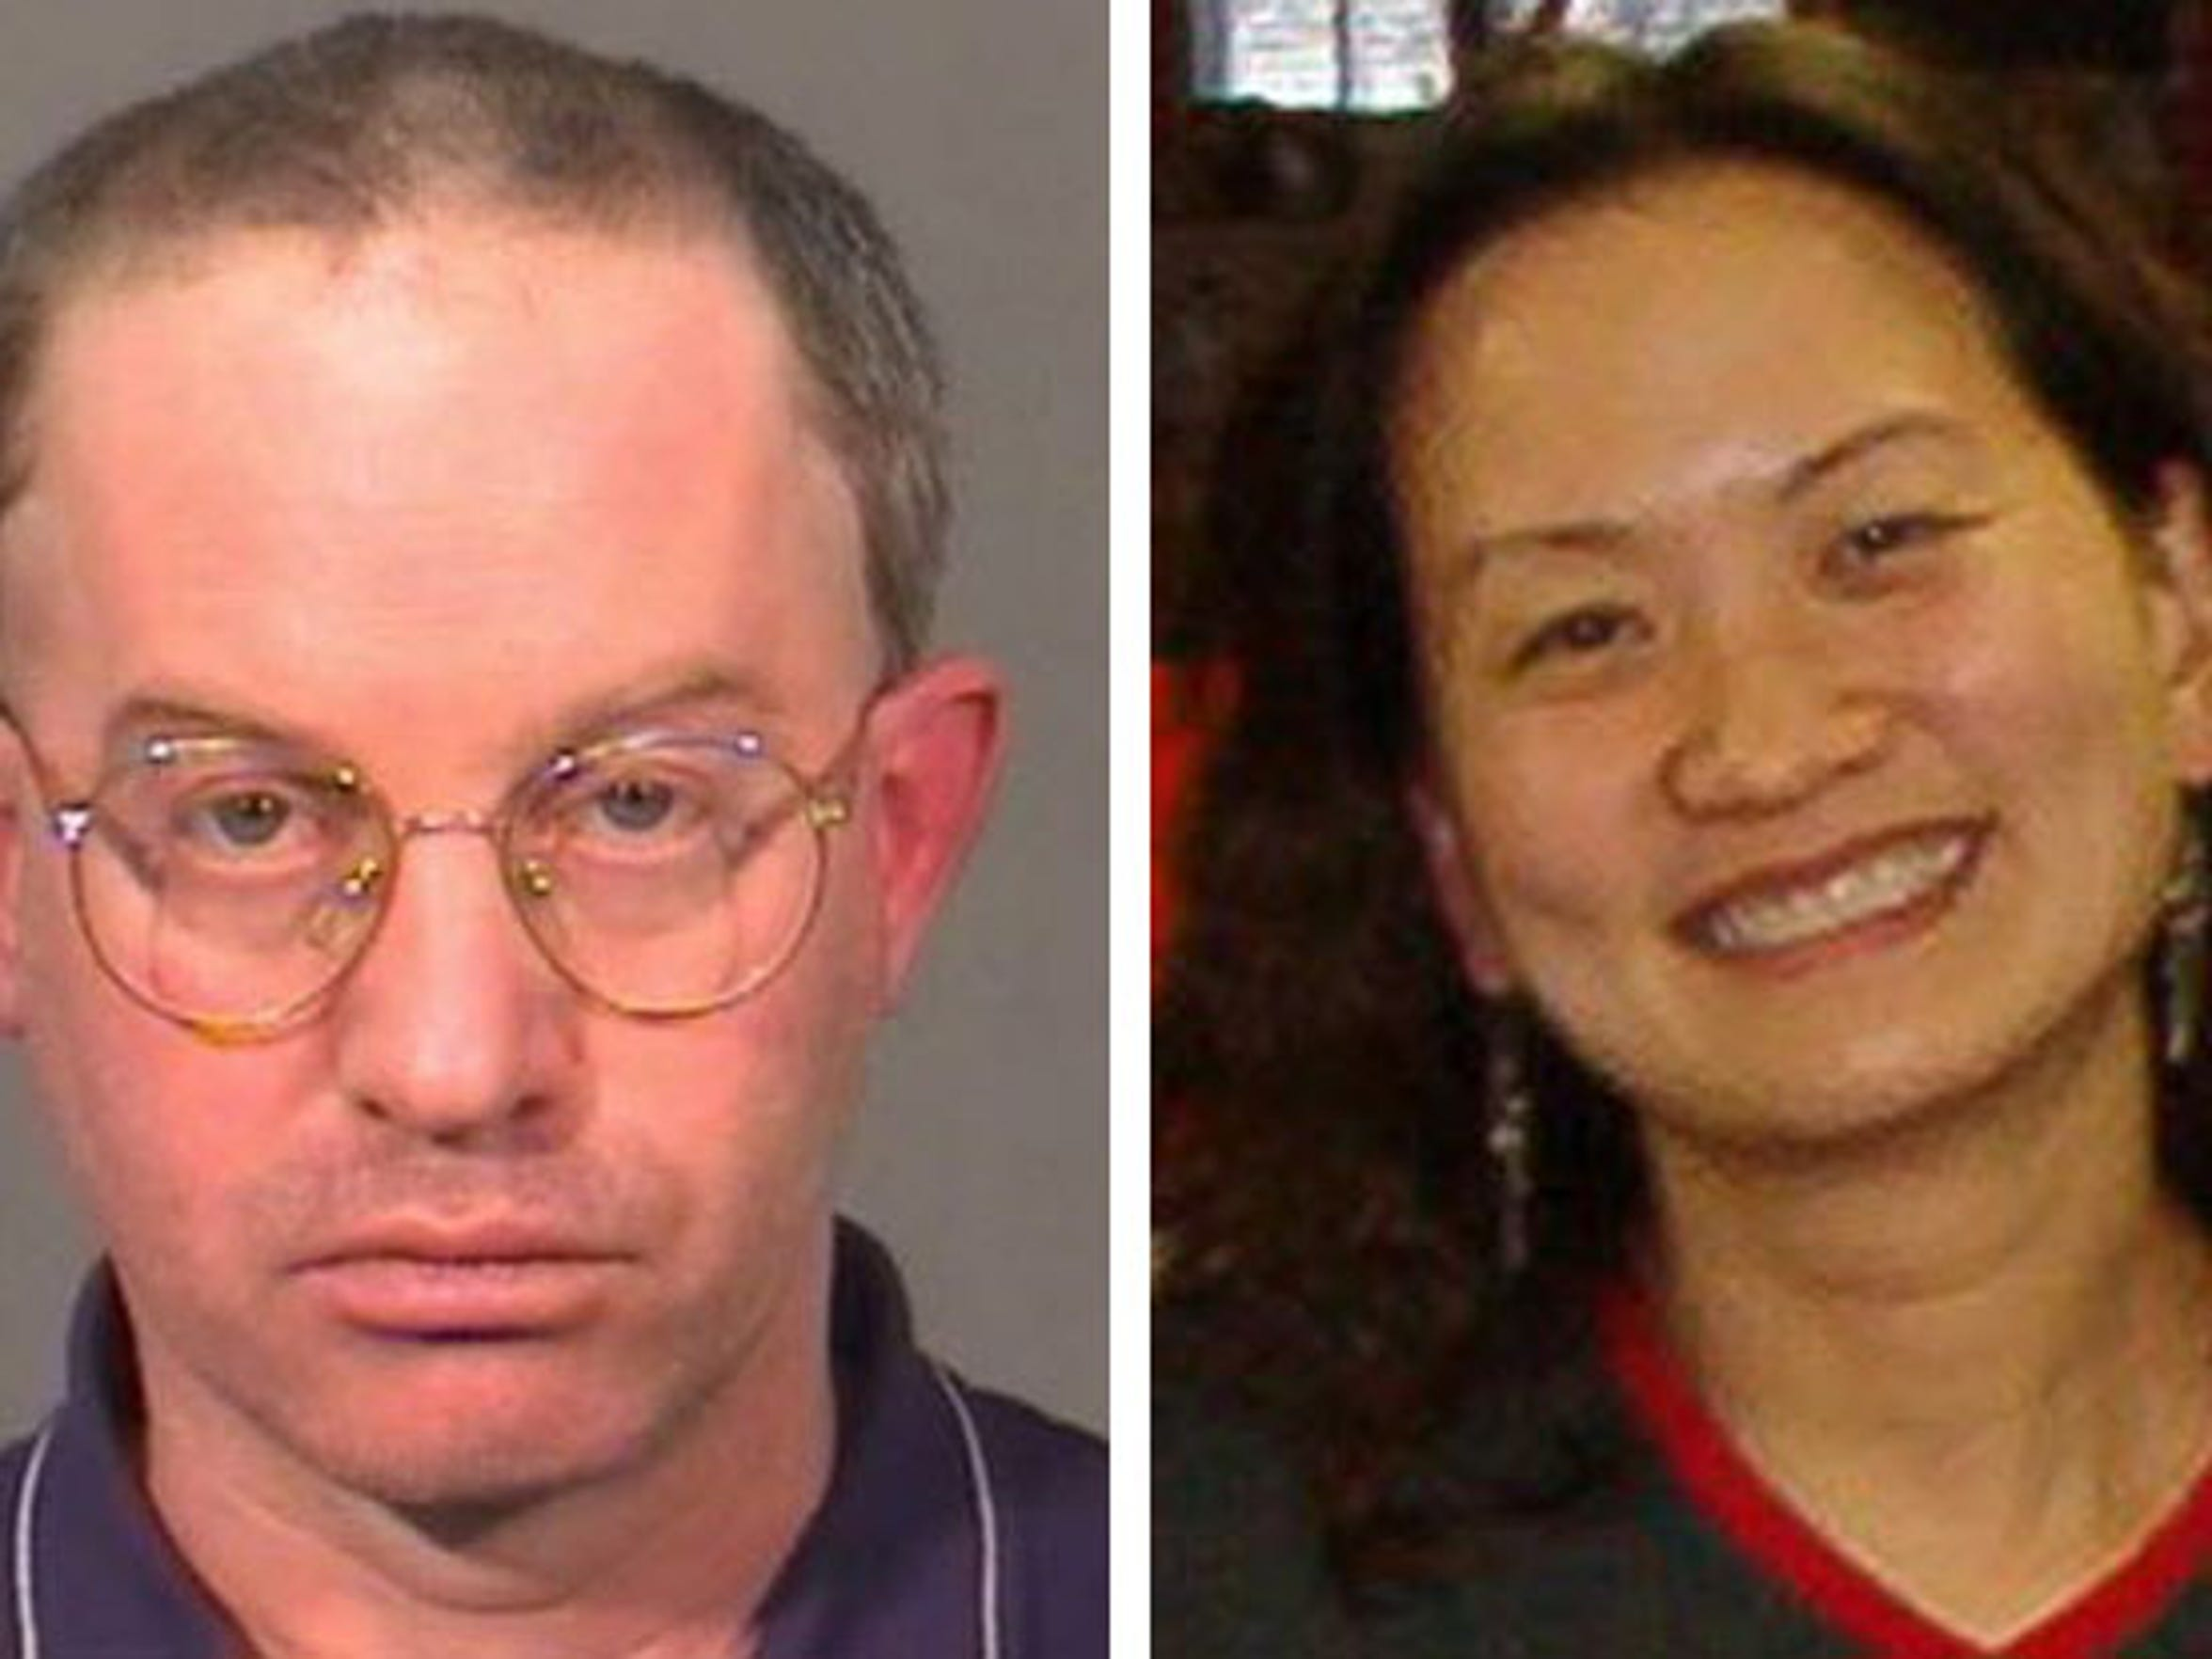 Steve Trattner (left) is serving a 35-year prison term in the 2006 killing of his wife, Sin Lam (right).